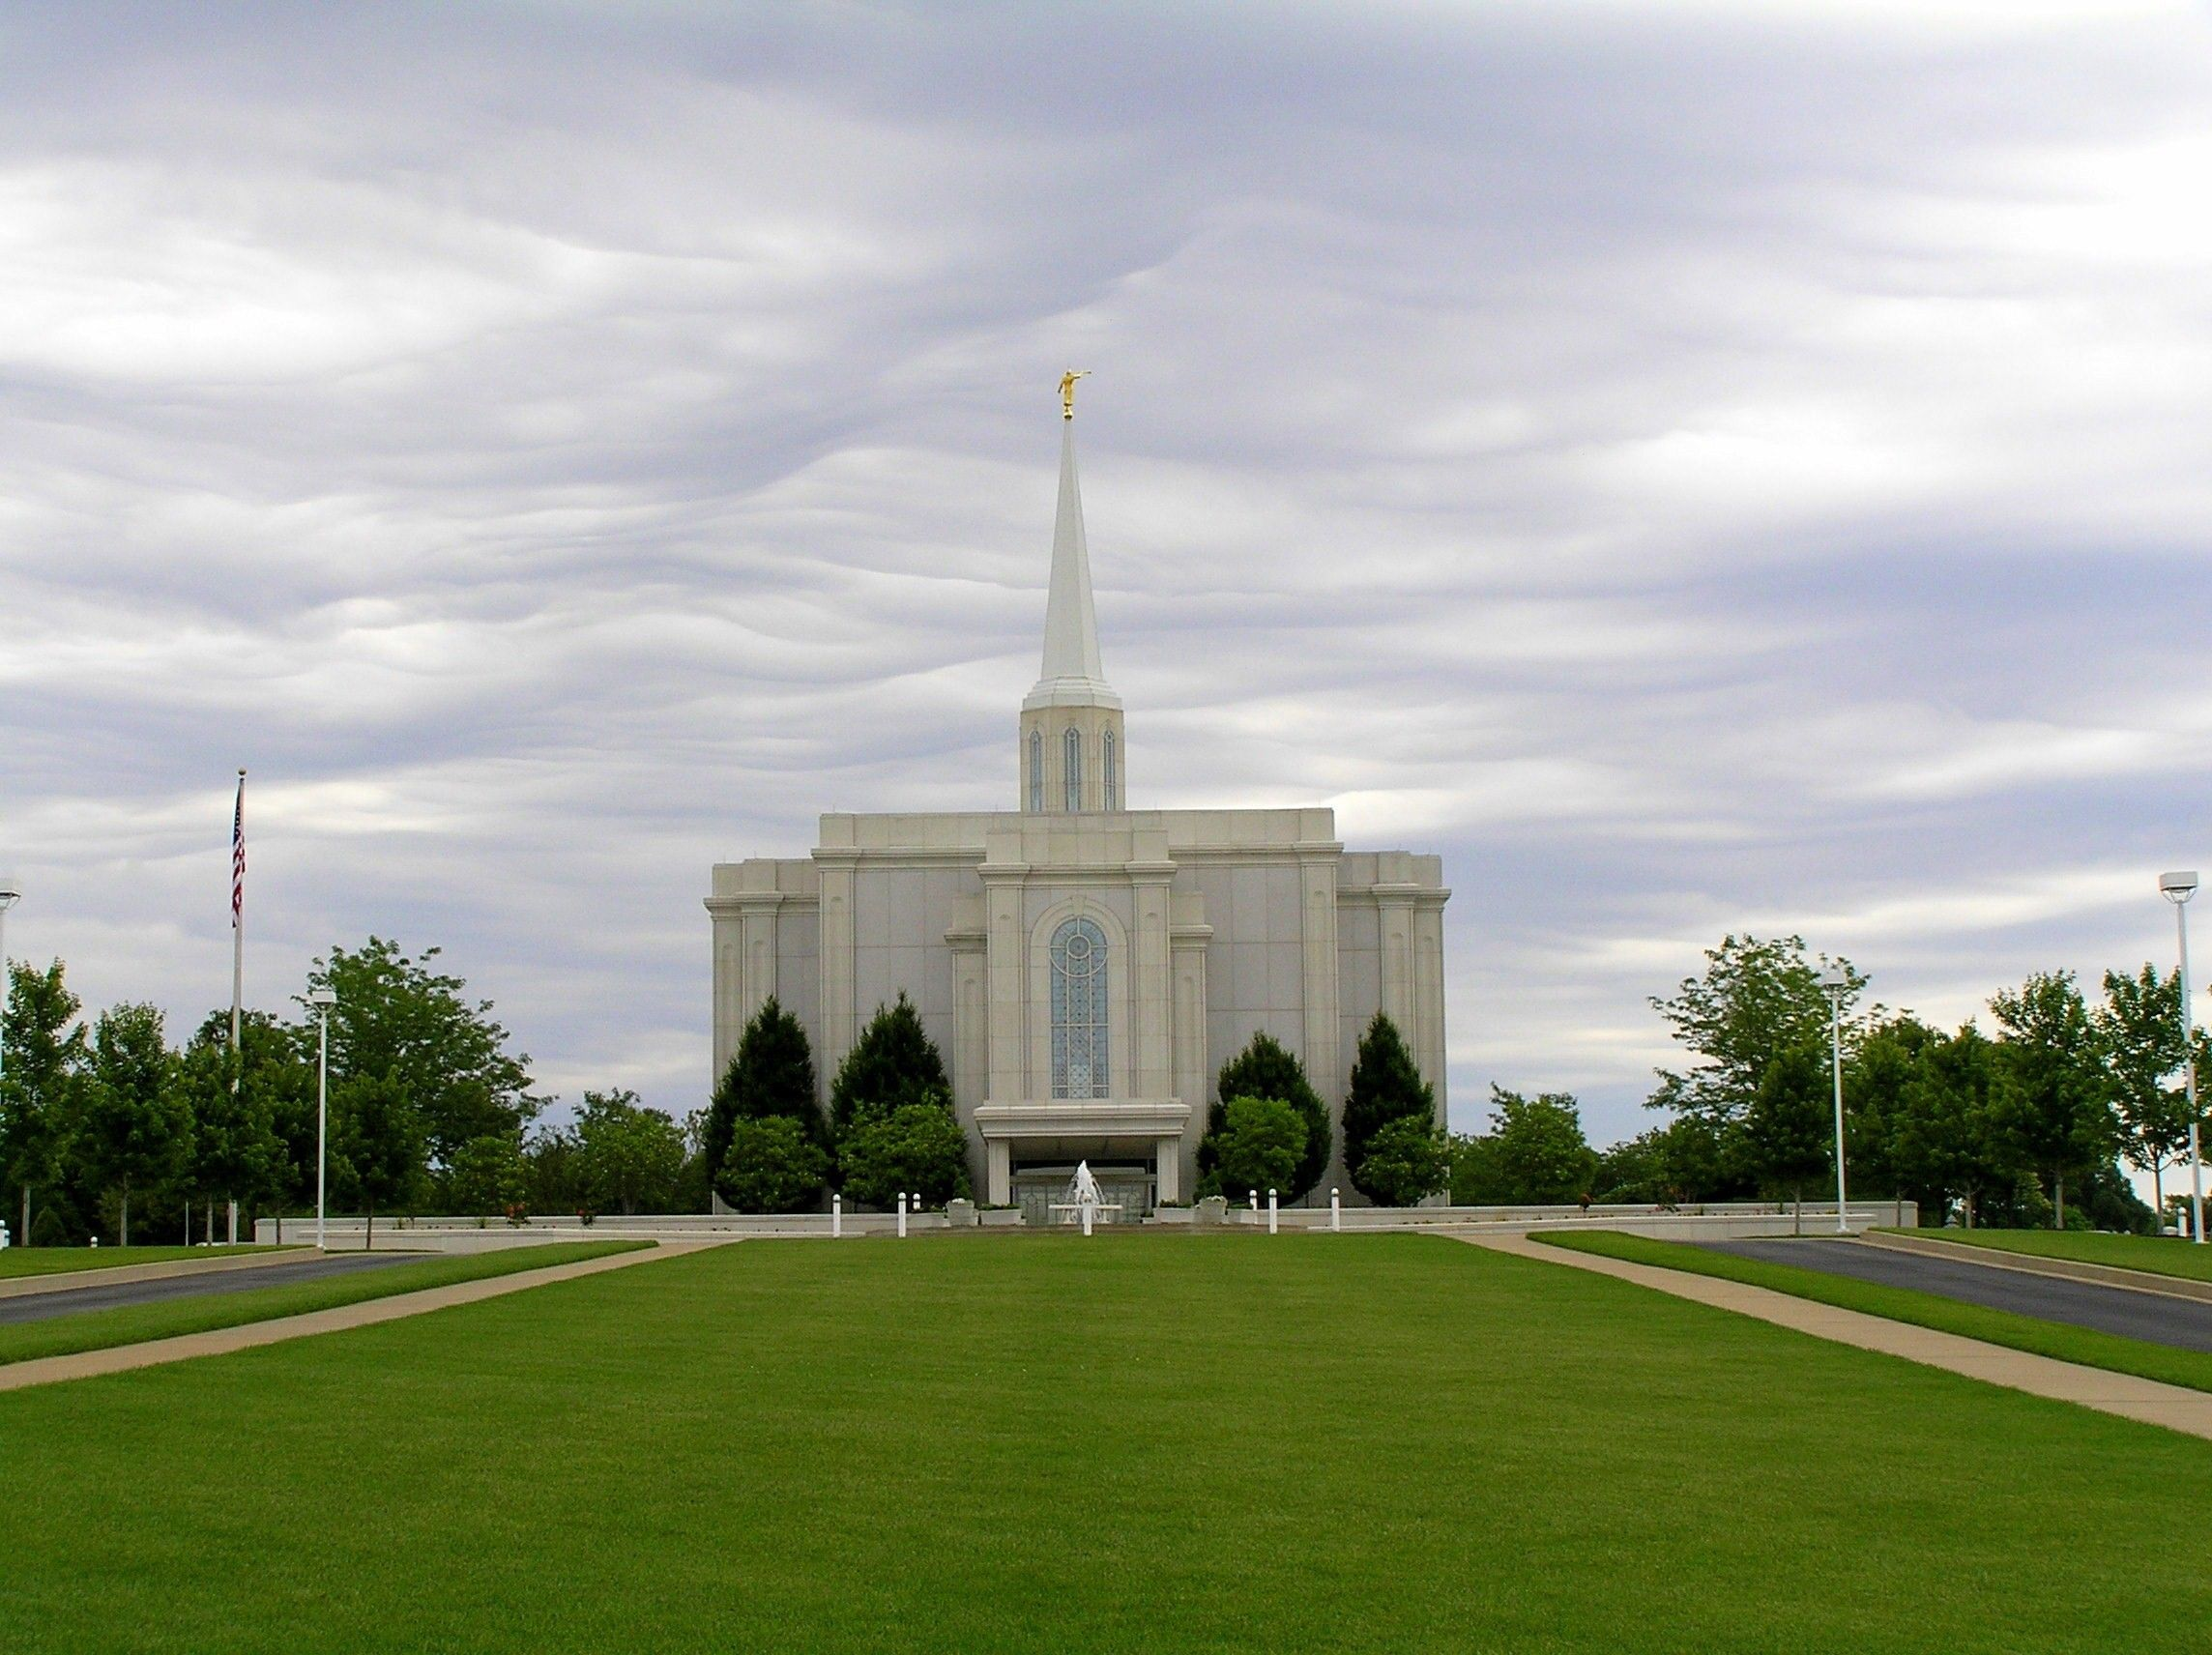 The St. Louis Missouri Temple and lawn on a cloudy day.